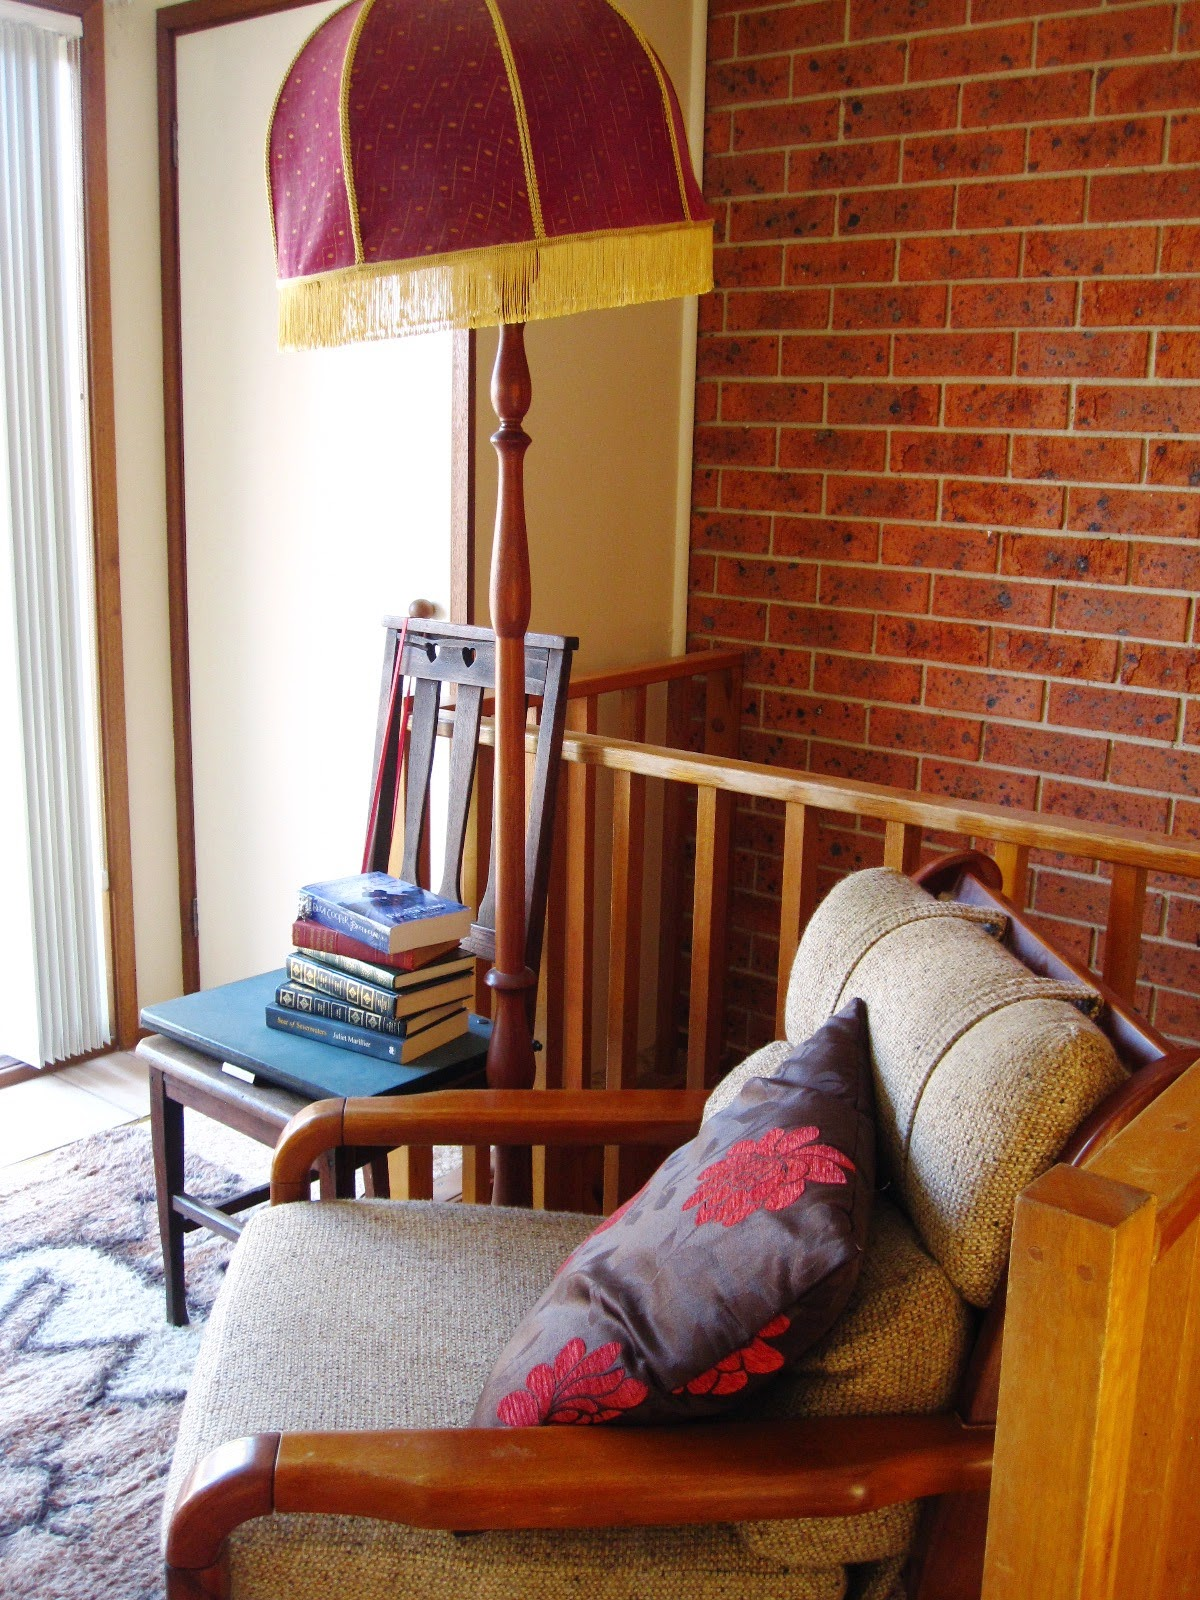 A reading nook which includes a 1970s comfy chair and floor rug, a vintage wooden floor lamp and a side chair holding a pile of books.